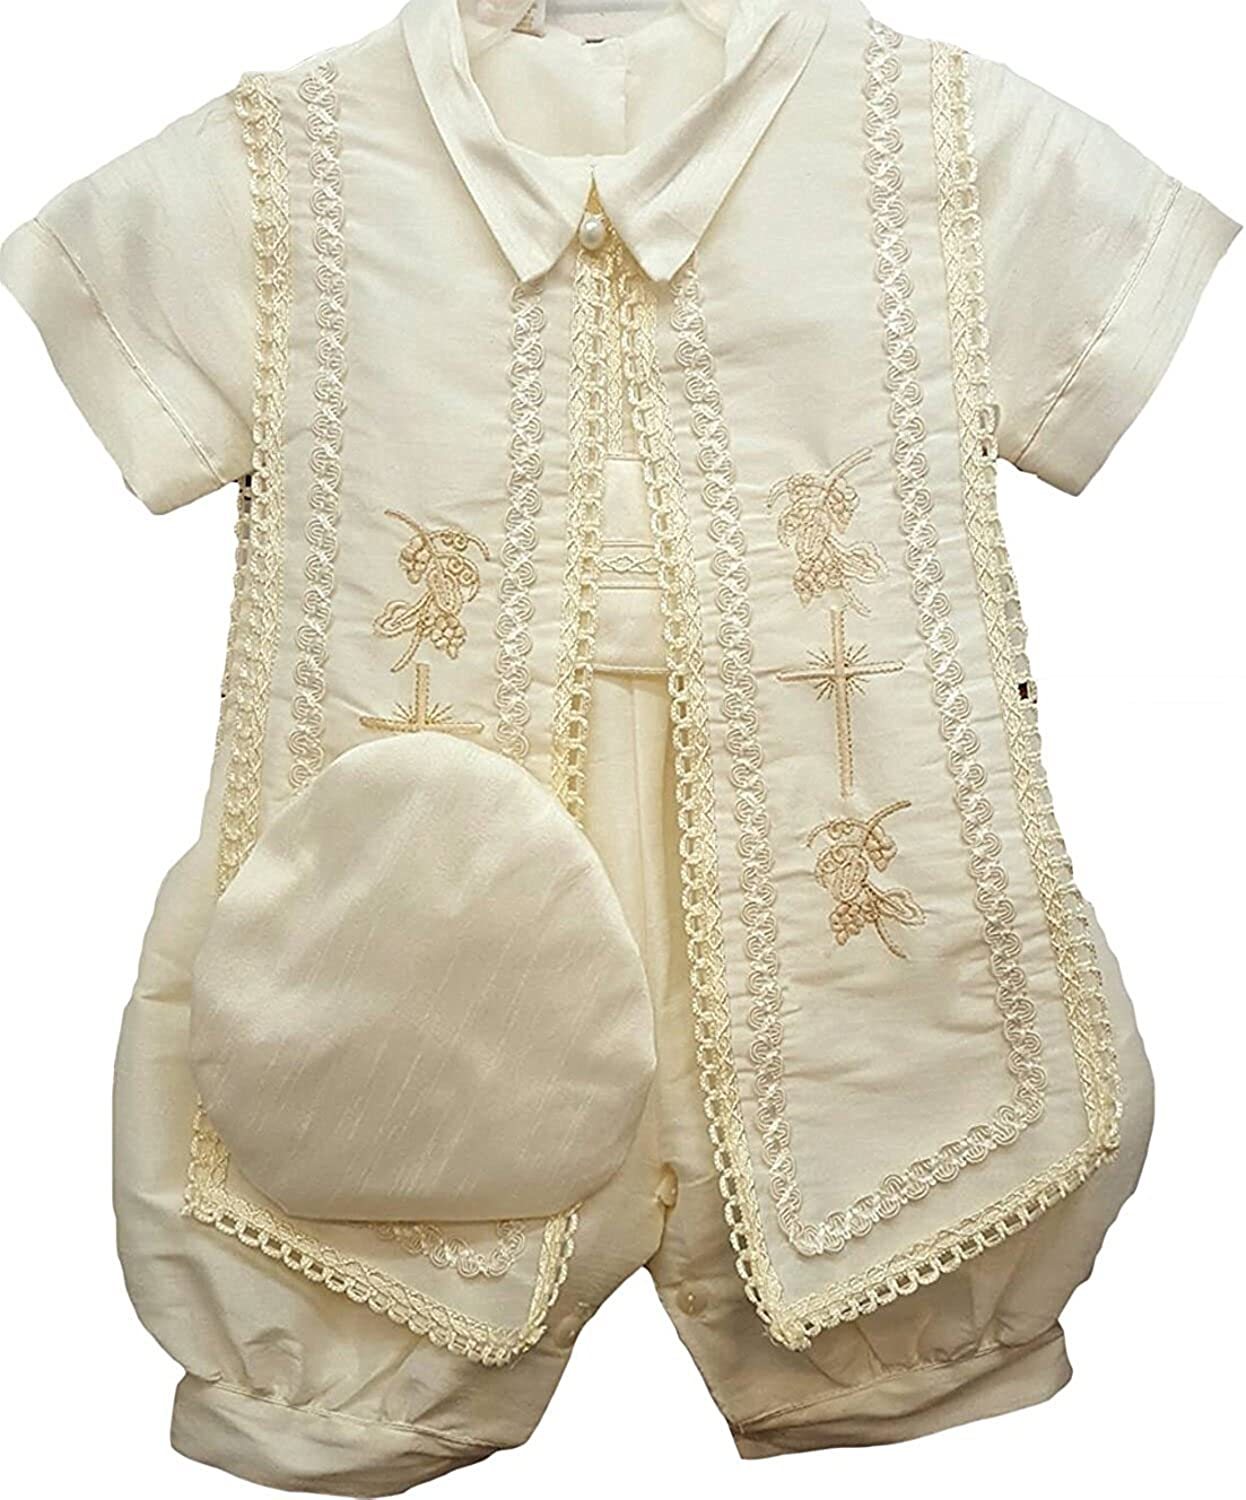 Aorme Baby Boys Christening Outfits Baptism Set Romper Suit